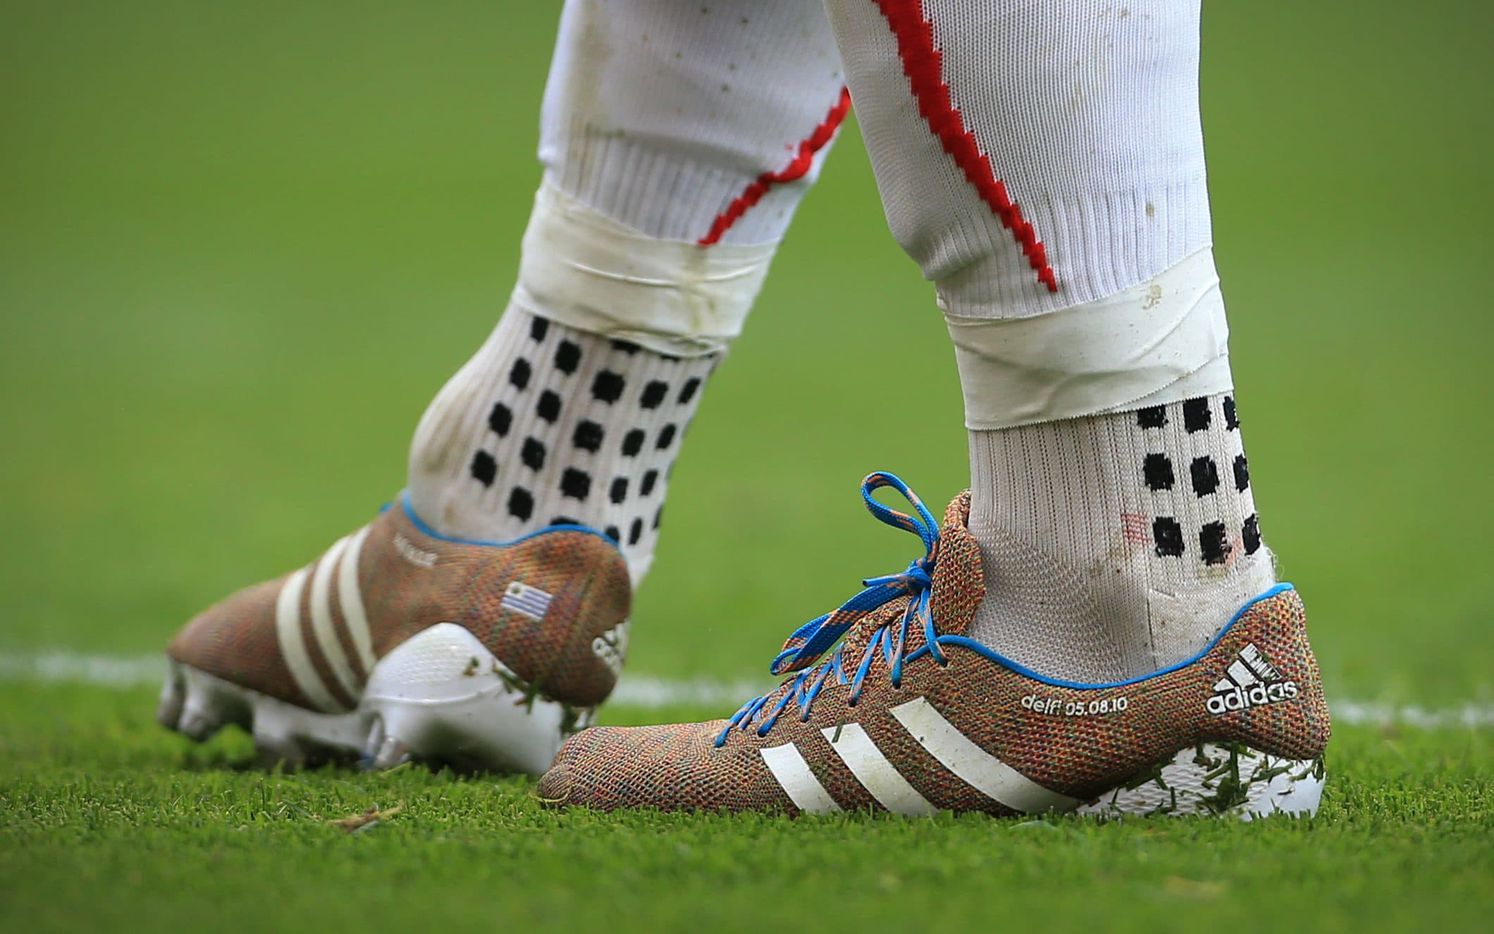 Luis Suarez wearing TRUsox while playing for Liverpool. The distinctive wet grip pattern is shown.